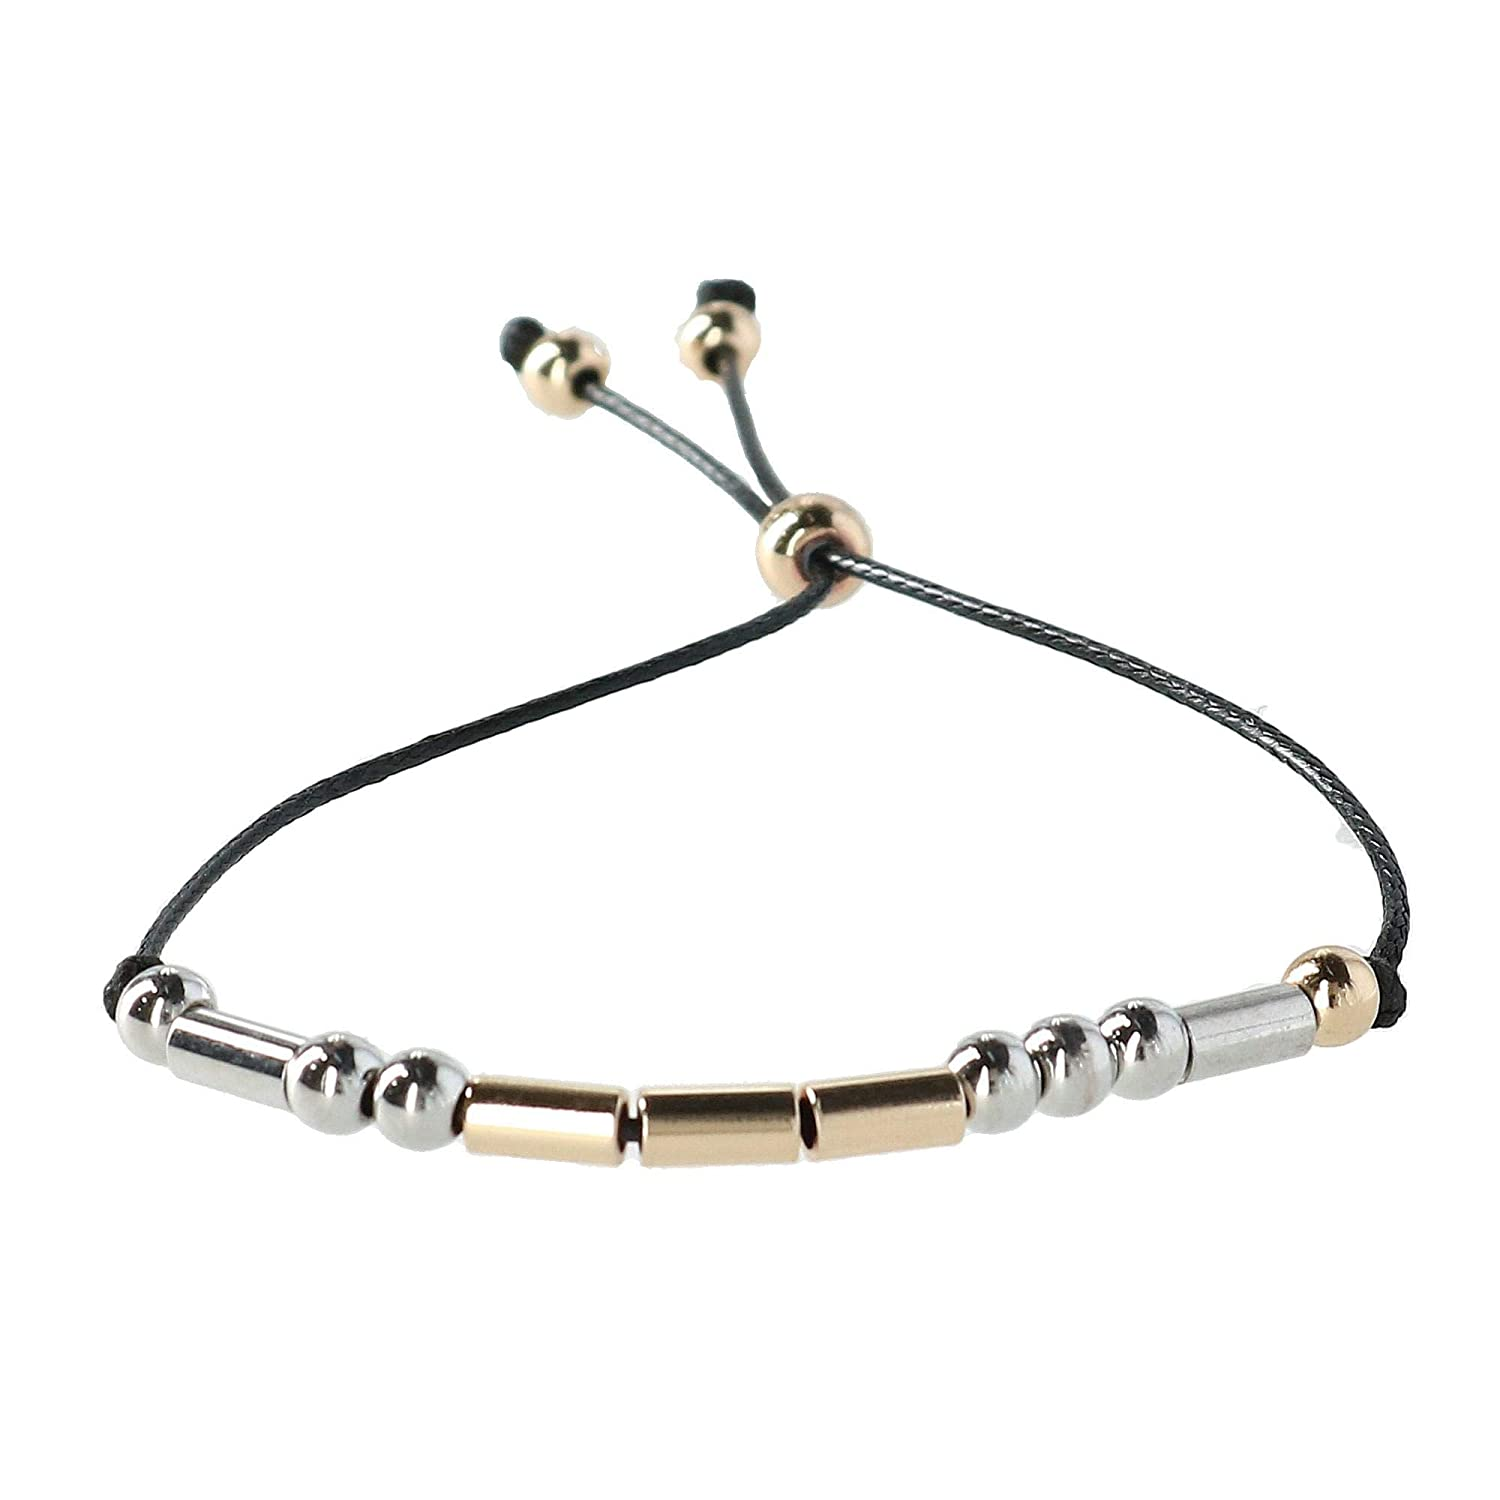 Fresh & co. Love Morse Code Bracelet